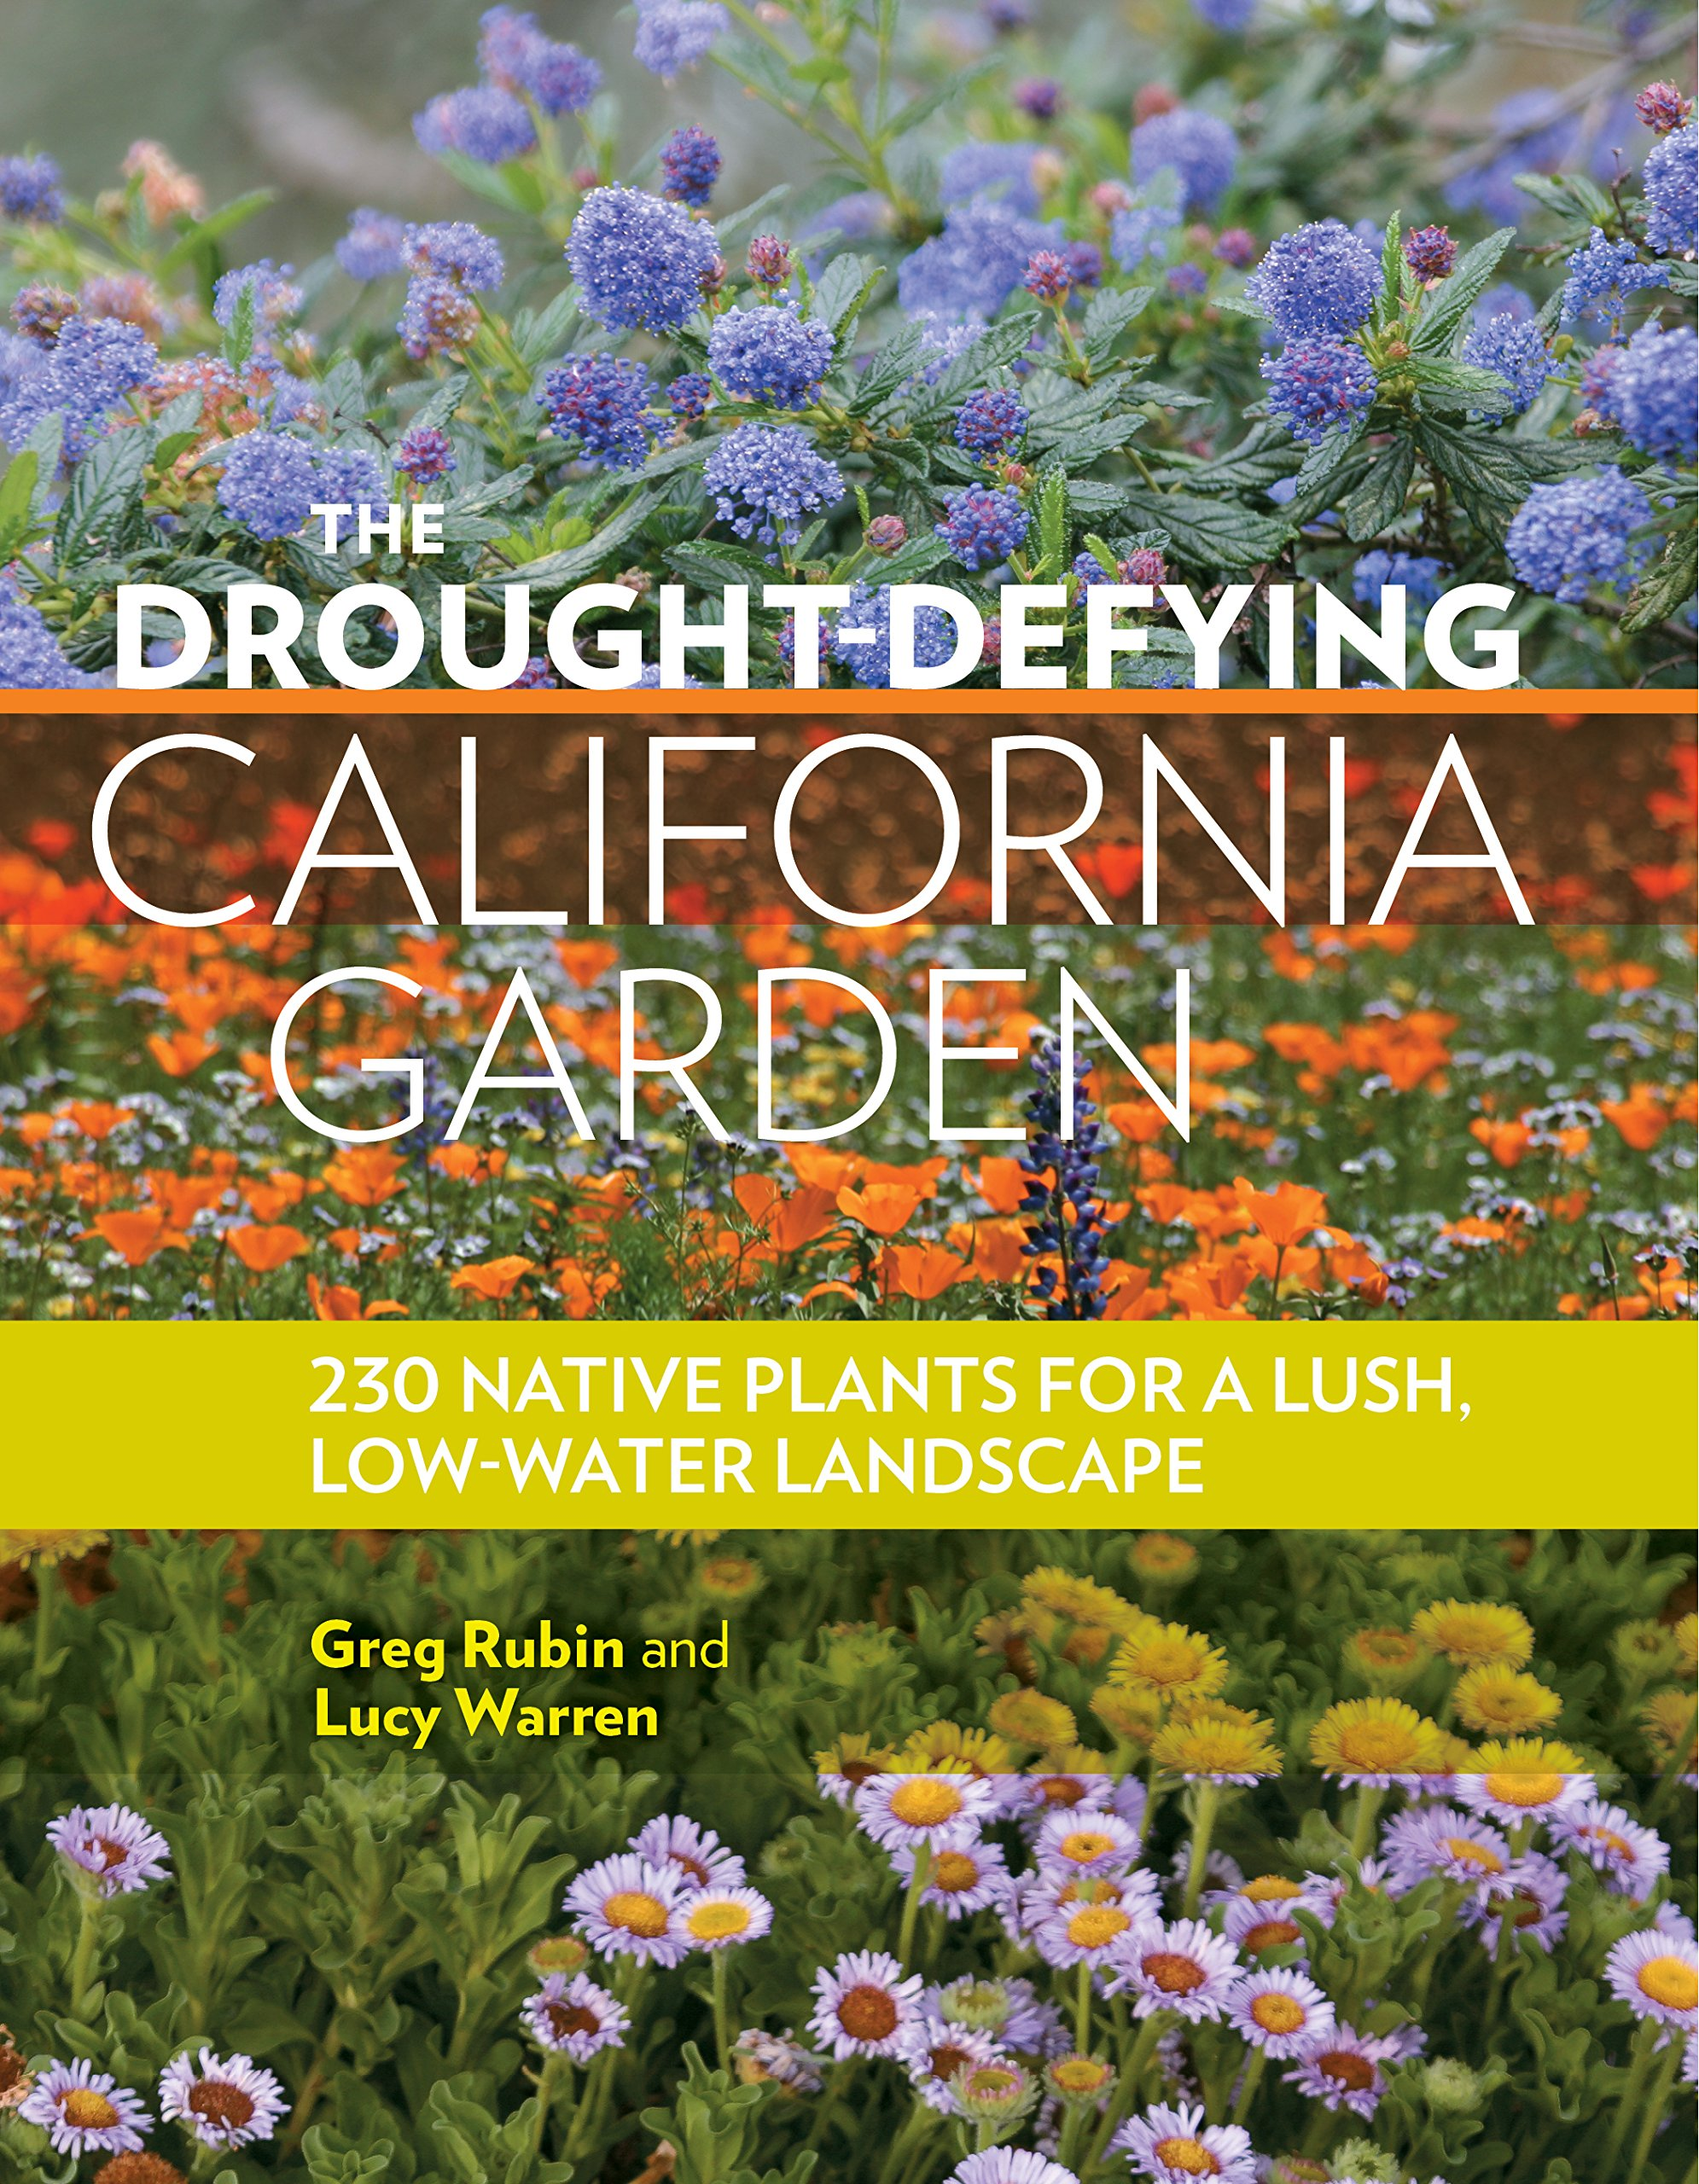 The Drought Defying California Garden: 230 Native Plants For A Lush,  Low Water Landscape: Greg Rubin, Lucy Warren: 9781604697094: Amazon.com:  Books